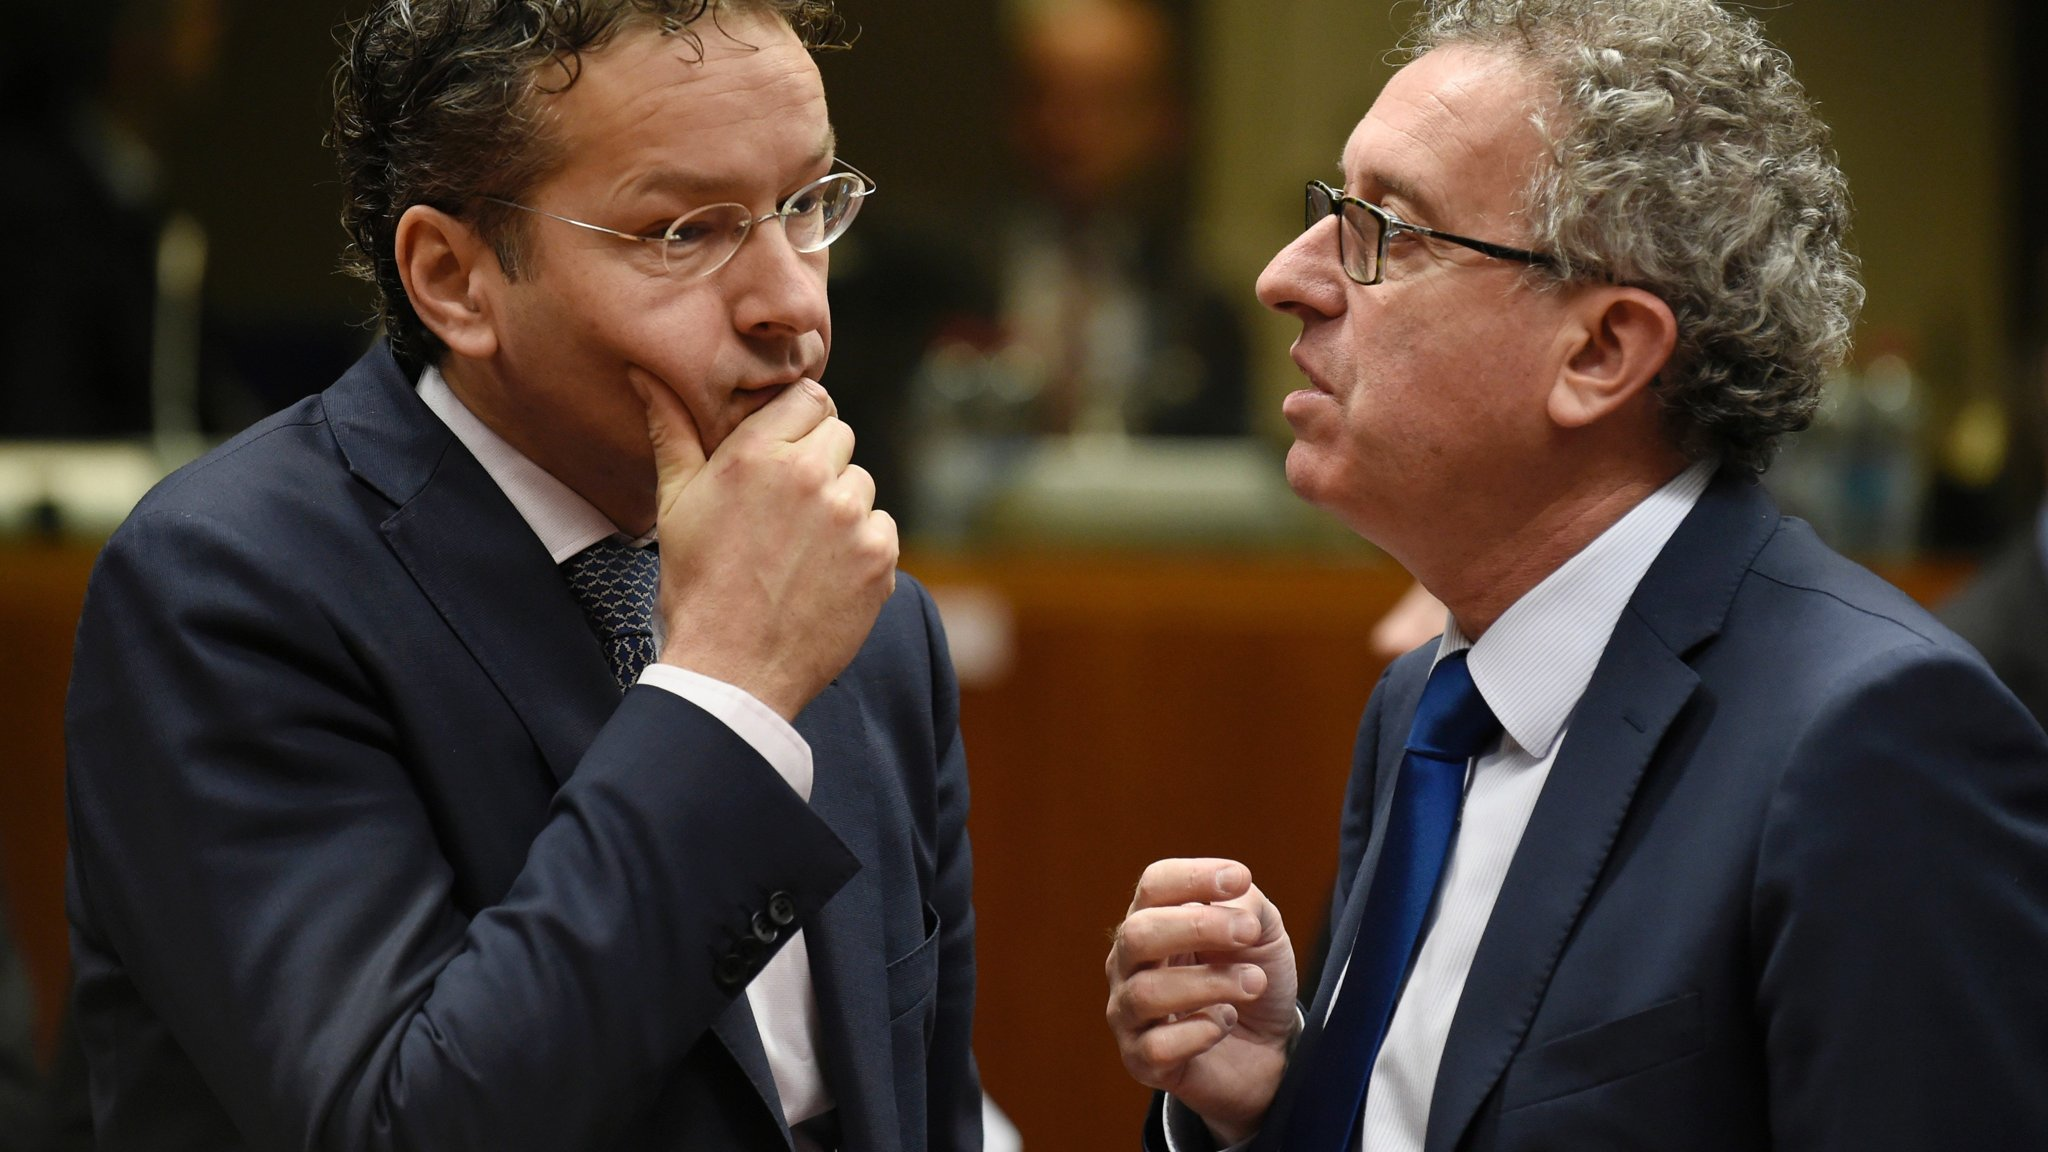 Pierre Gramegna Emerges As Early Eurogroup Frontrunner